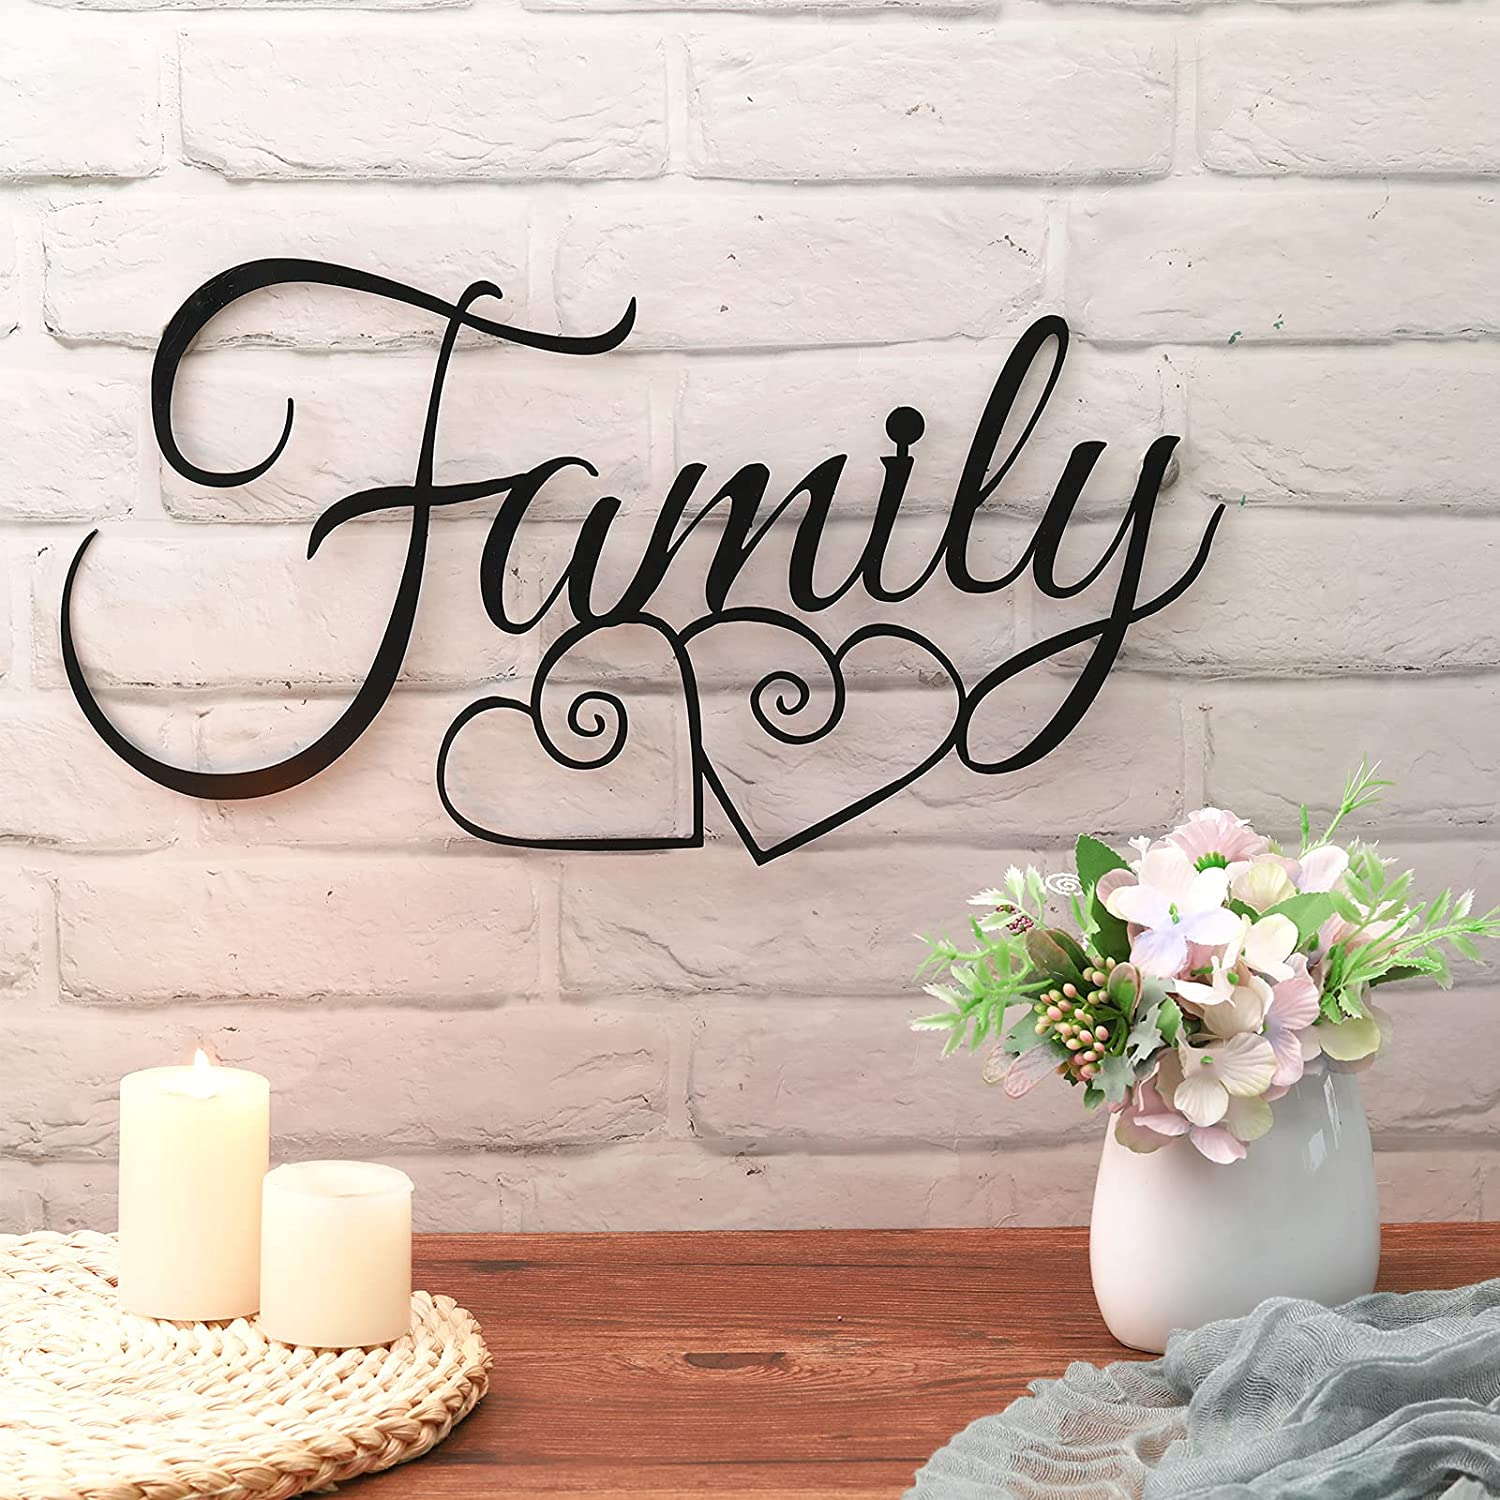 Family Metal Wall Sign Metal Family Wall Decor Sign Black Metal Family Word Wall Art Metal Family Wall Hanging Decoration for Home Dining Room Kitchen Door Decorations Wall Decor